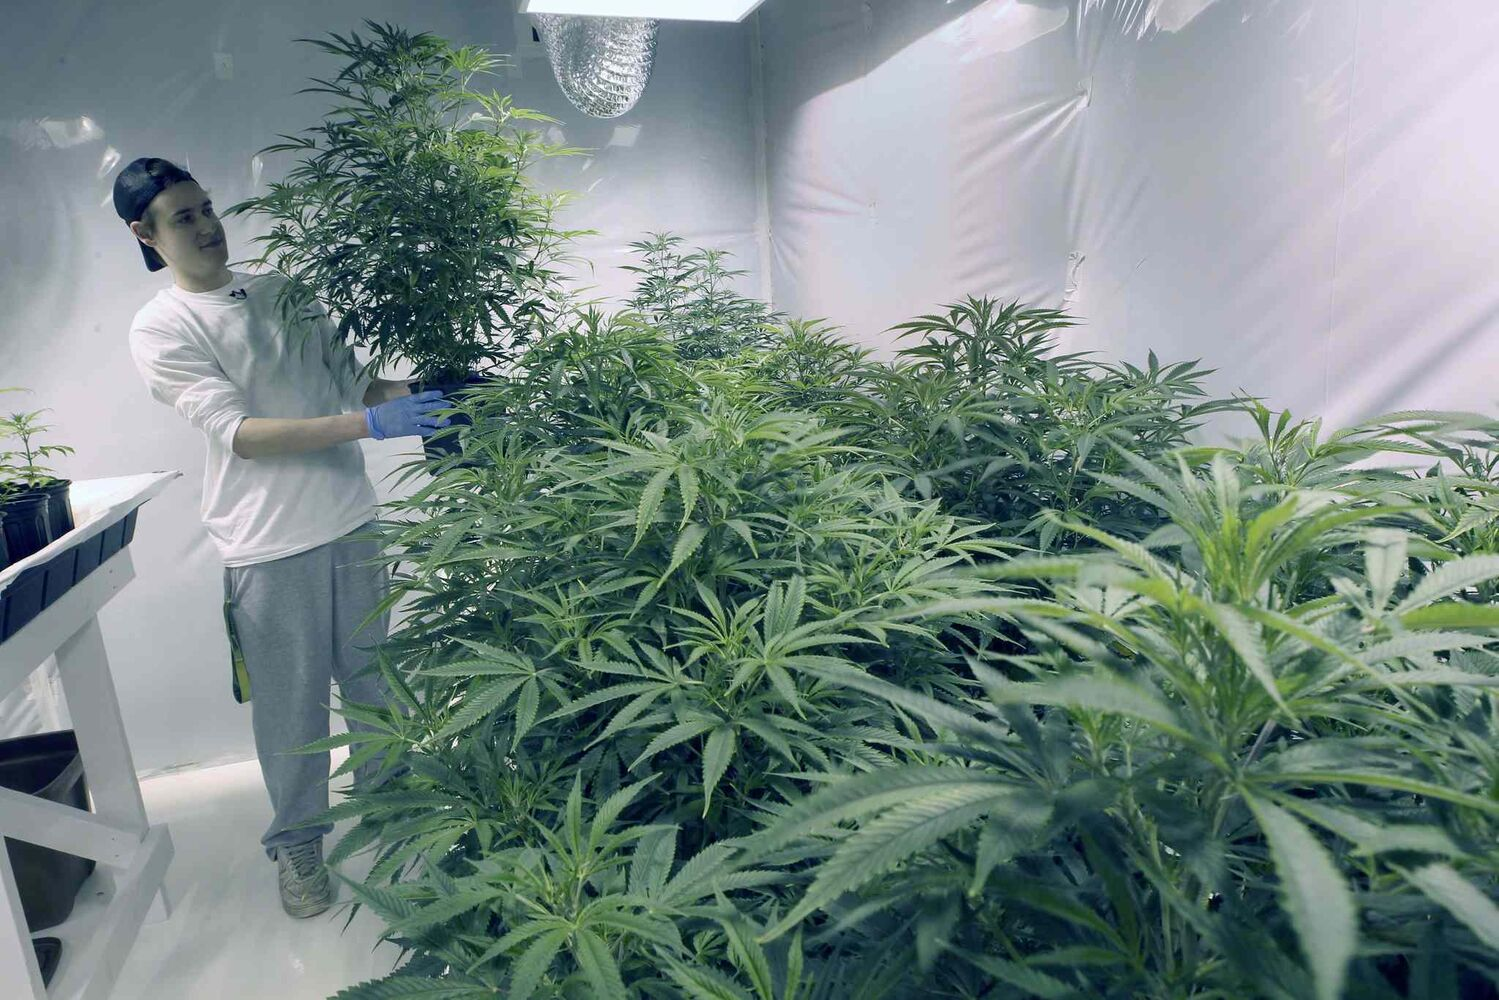 John Arbuthnot, VP of Delta 9 Bio-tech, tends to medical marijuana being produced in Winnipeg. The company currently has 1000 plants producing $3-million worth product. (JOE BRYKSA / WINNIPEG FREE PRESS)